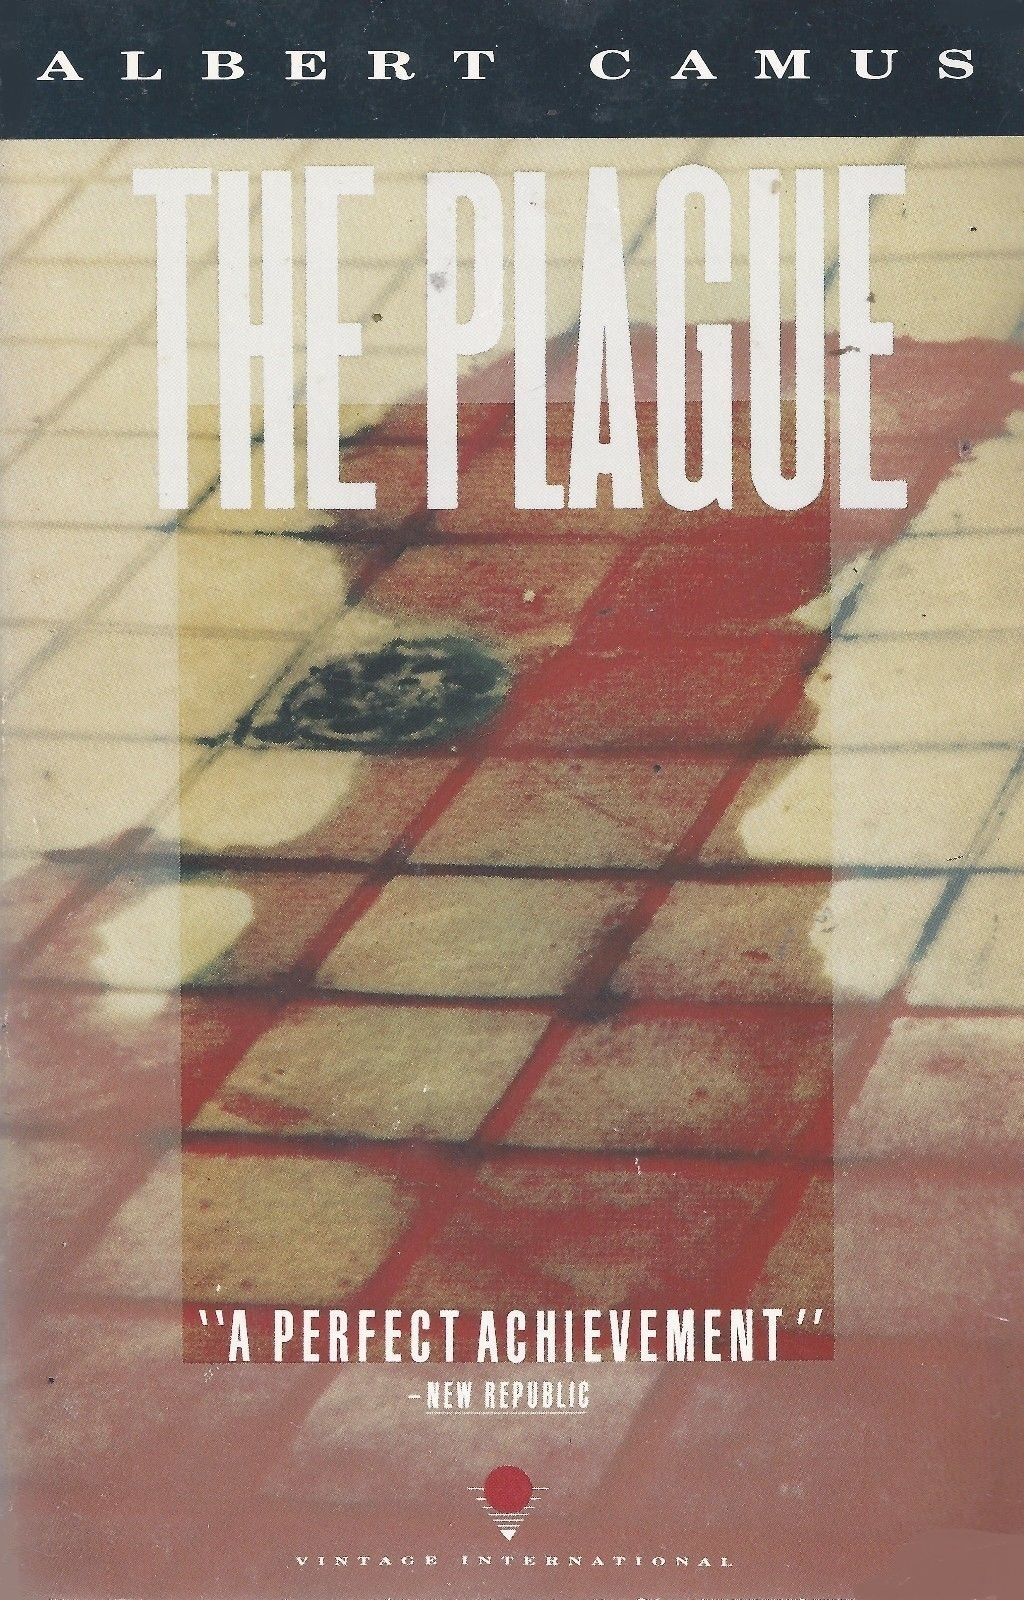 Albert Camus - The Plague